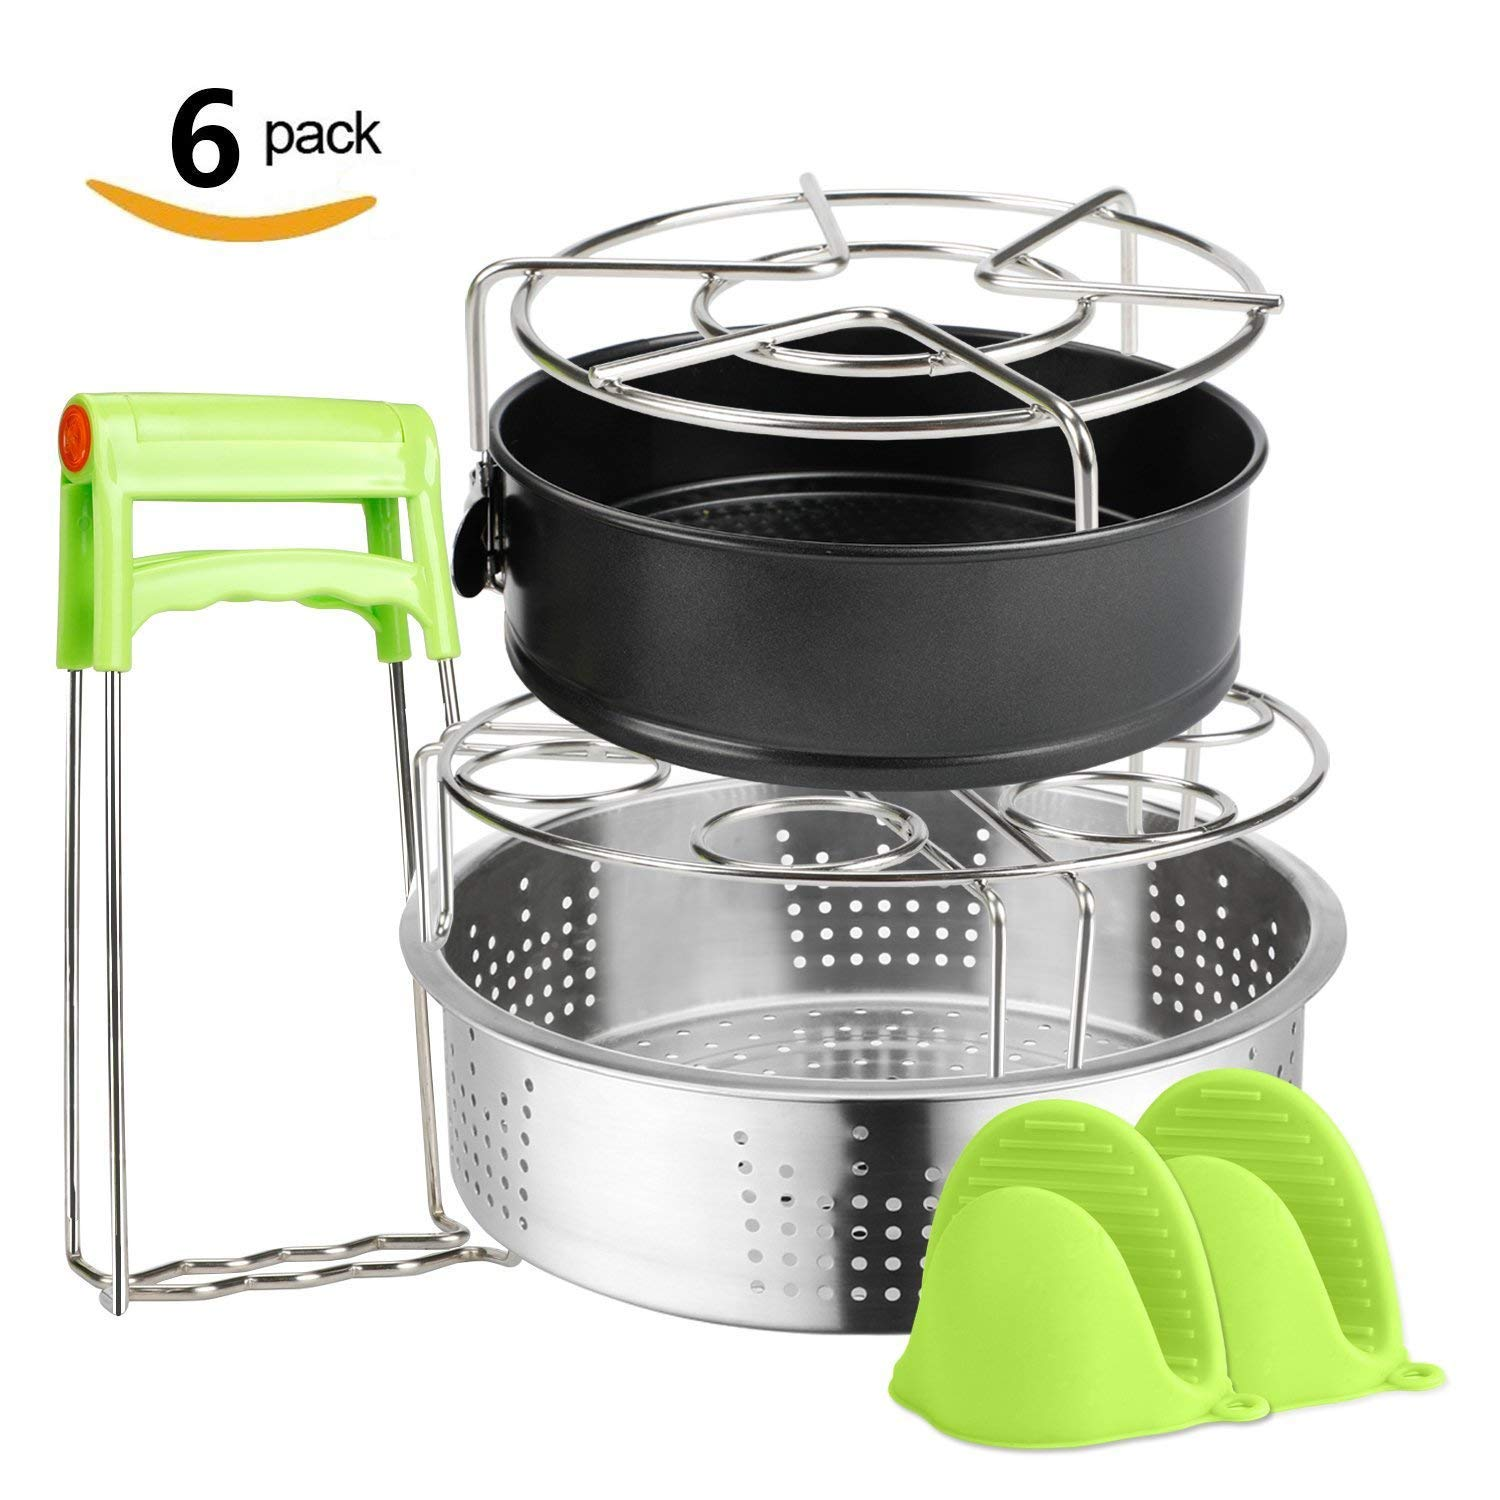 6 PACKS Instant Pot Accessories Steamer Basket Steamer Sets Steamer Base Springform Pan Egg Steamer Rack Silicone Oven Mitts Plate Dish Clip for Pressure Cooker Cooking Pot Steamer Pot Pan 4 5 6 8 qt